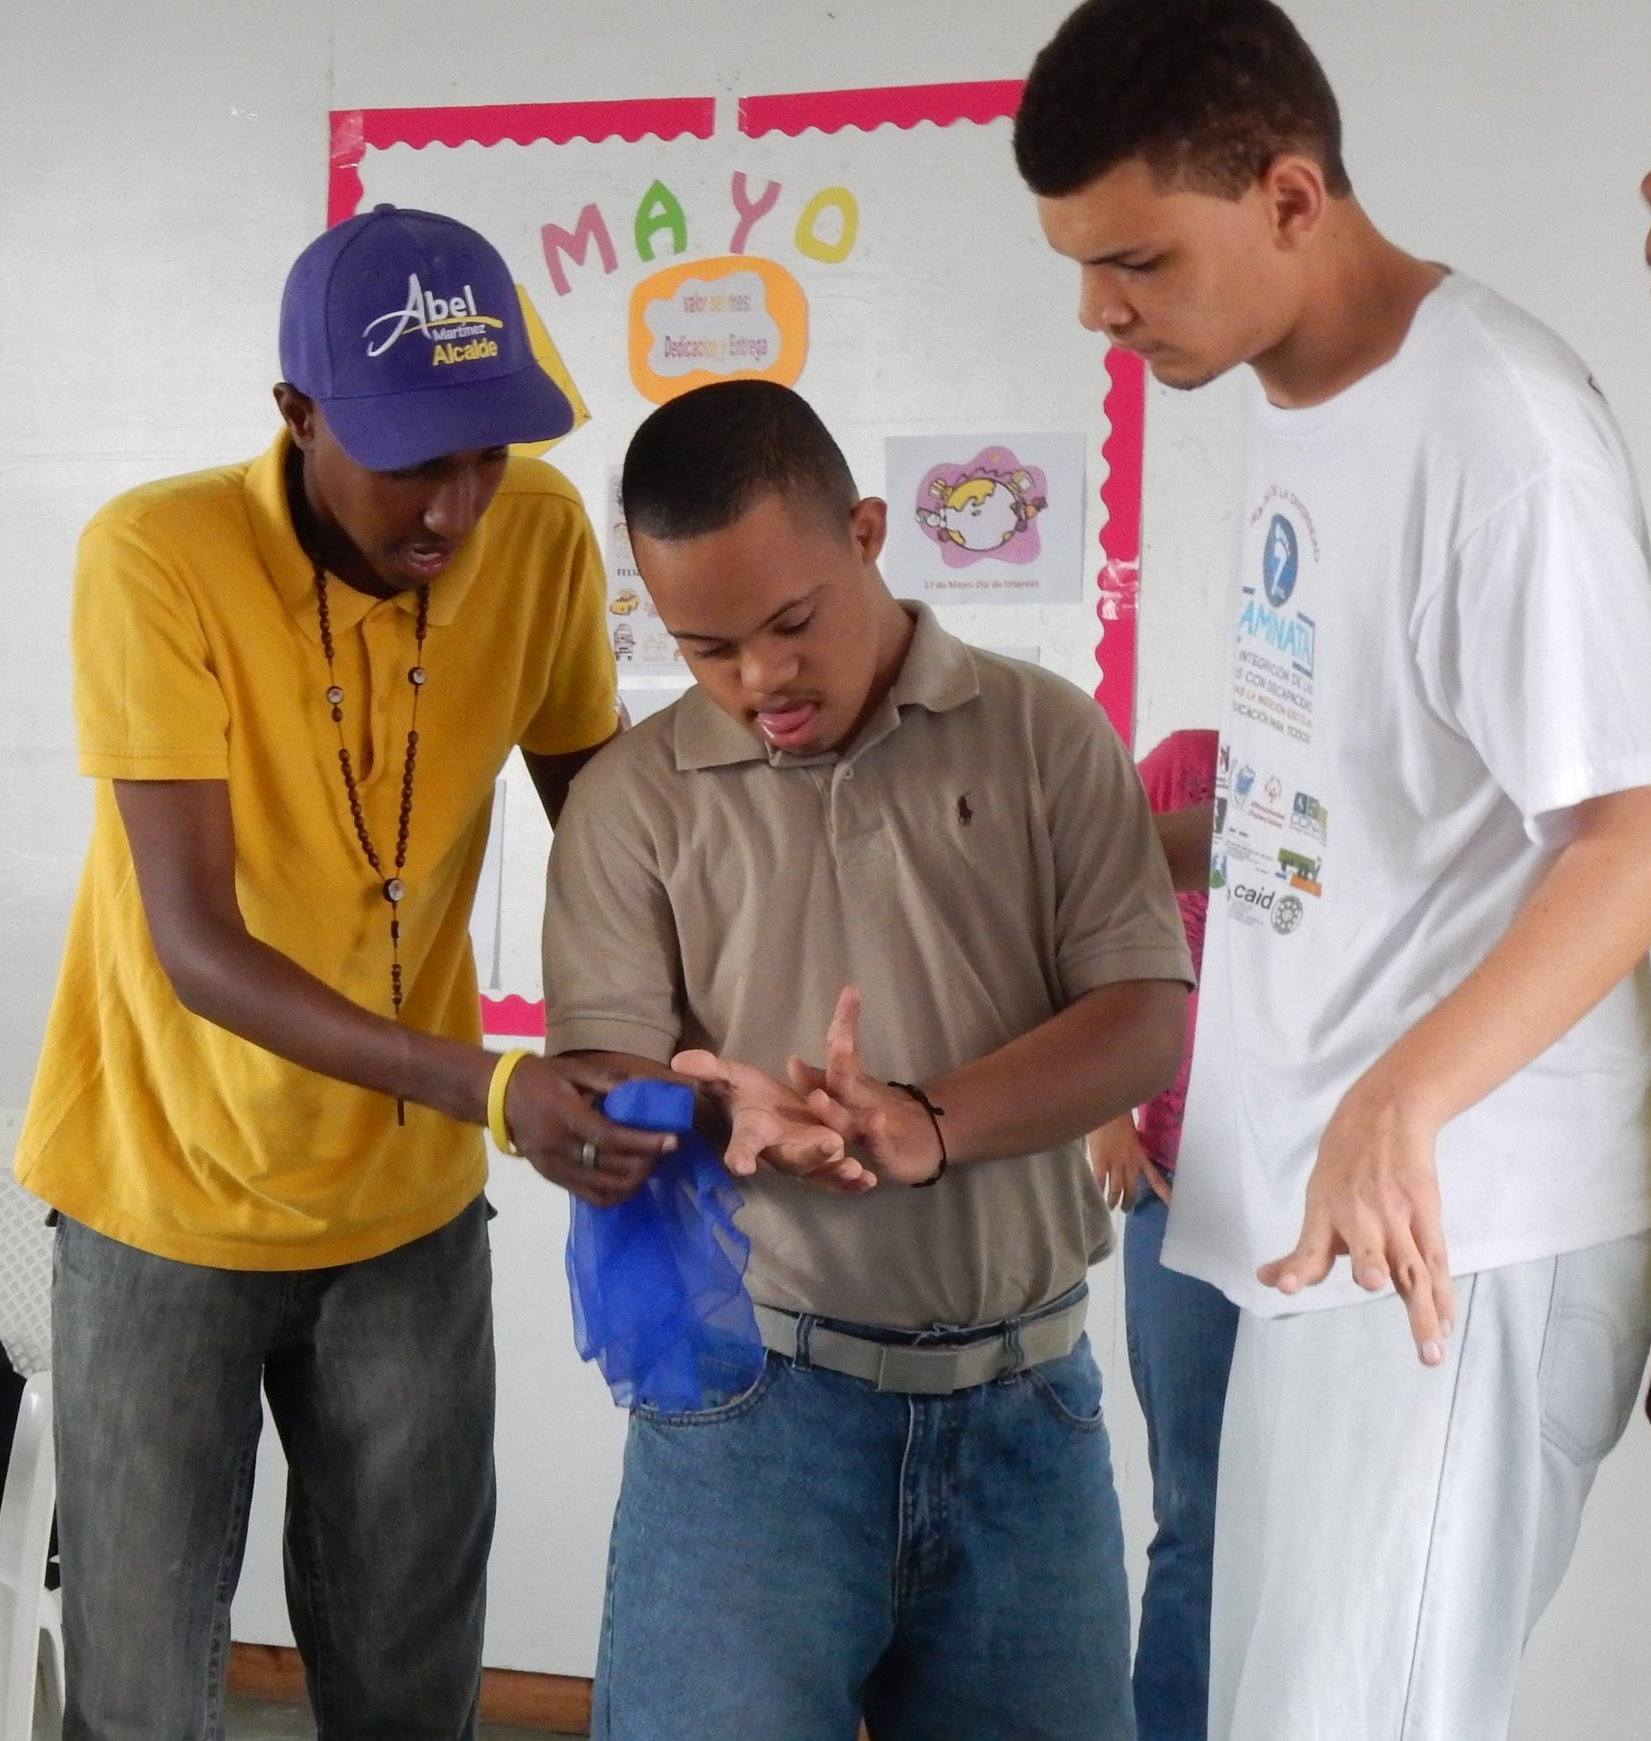 Cesar and Estarlin help their classmate with a game that develops their motor skills.